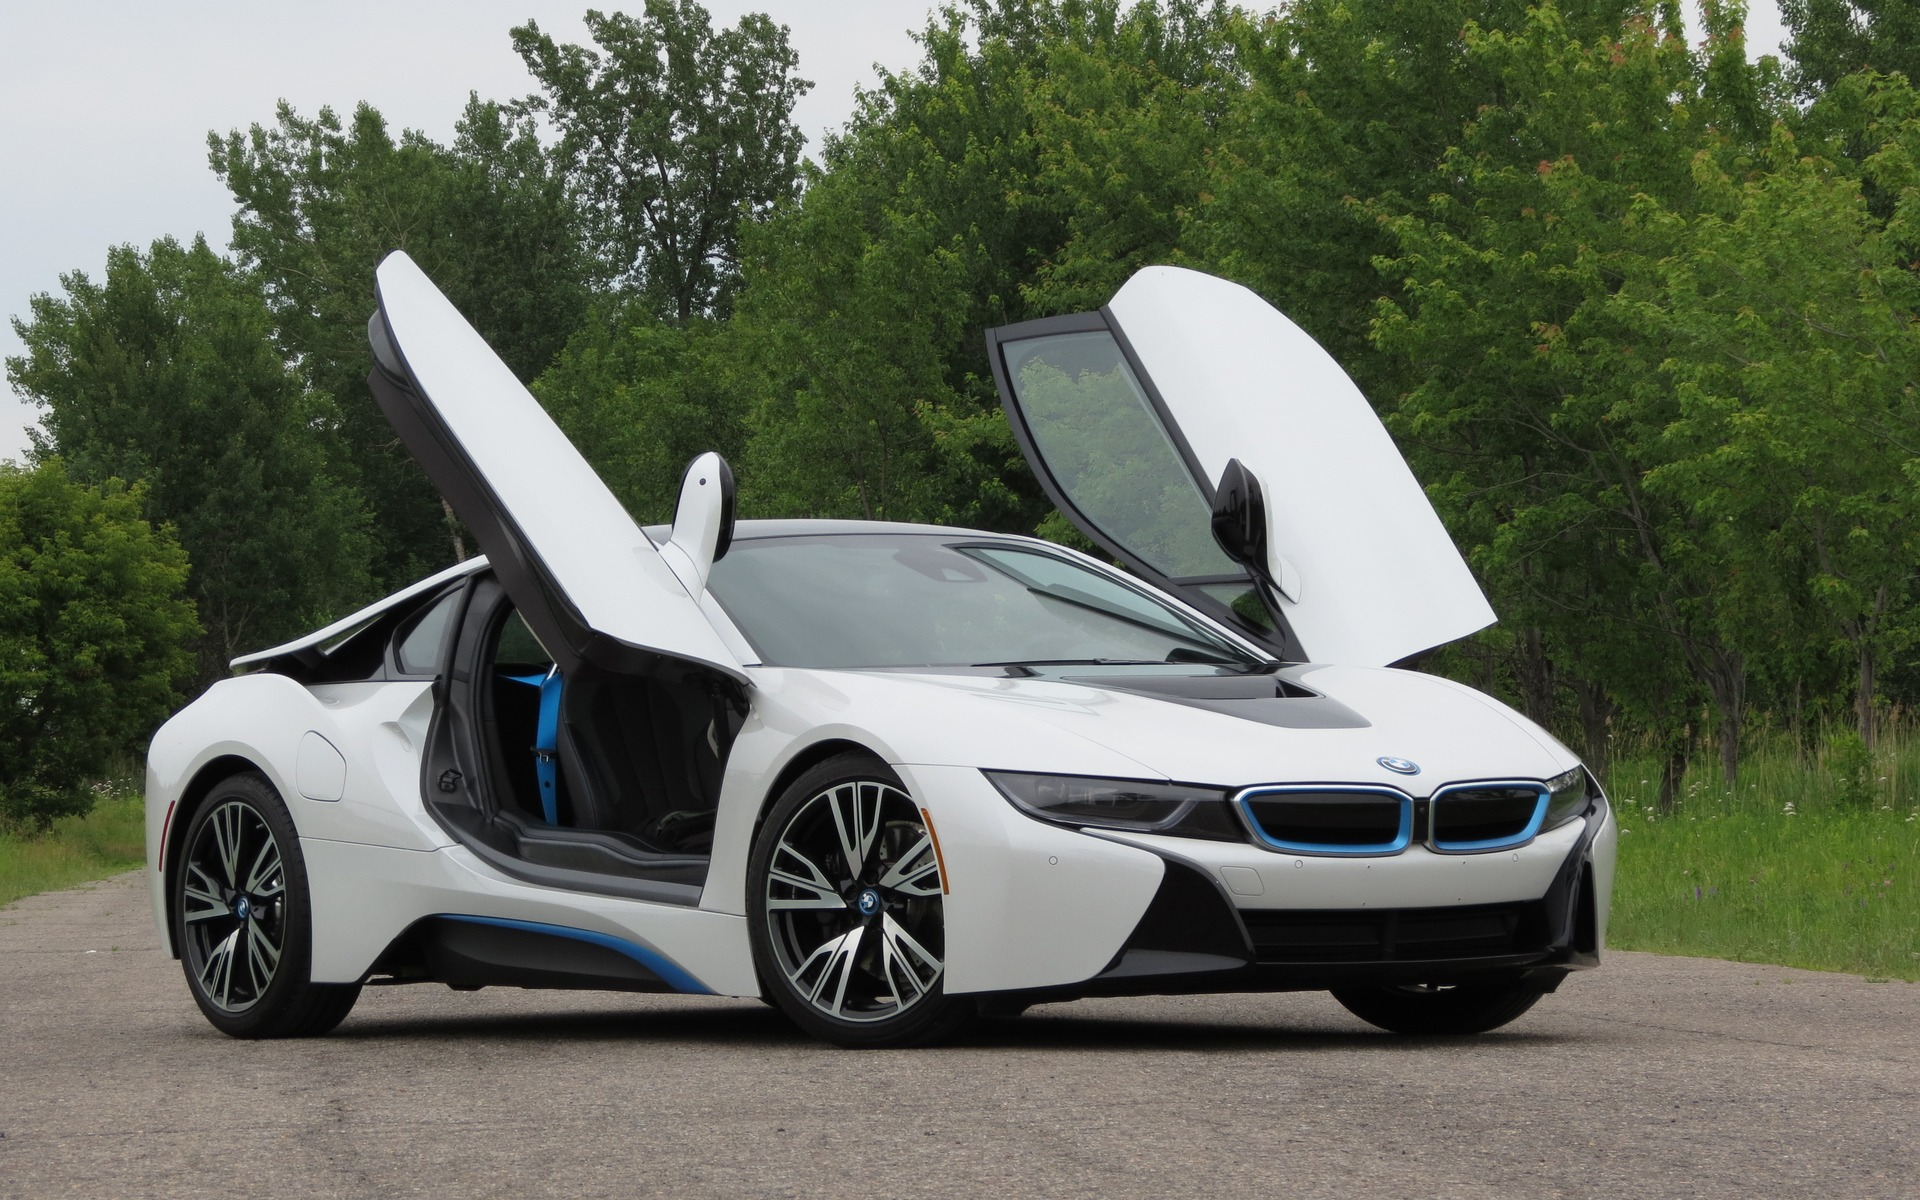 2016 bmw i8 photos 1 5 the car guide. Black Bedroom Furniture Sets. Home Design Ideas